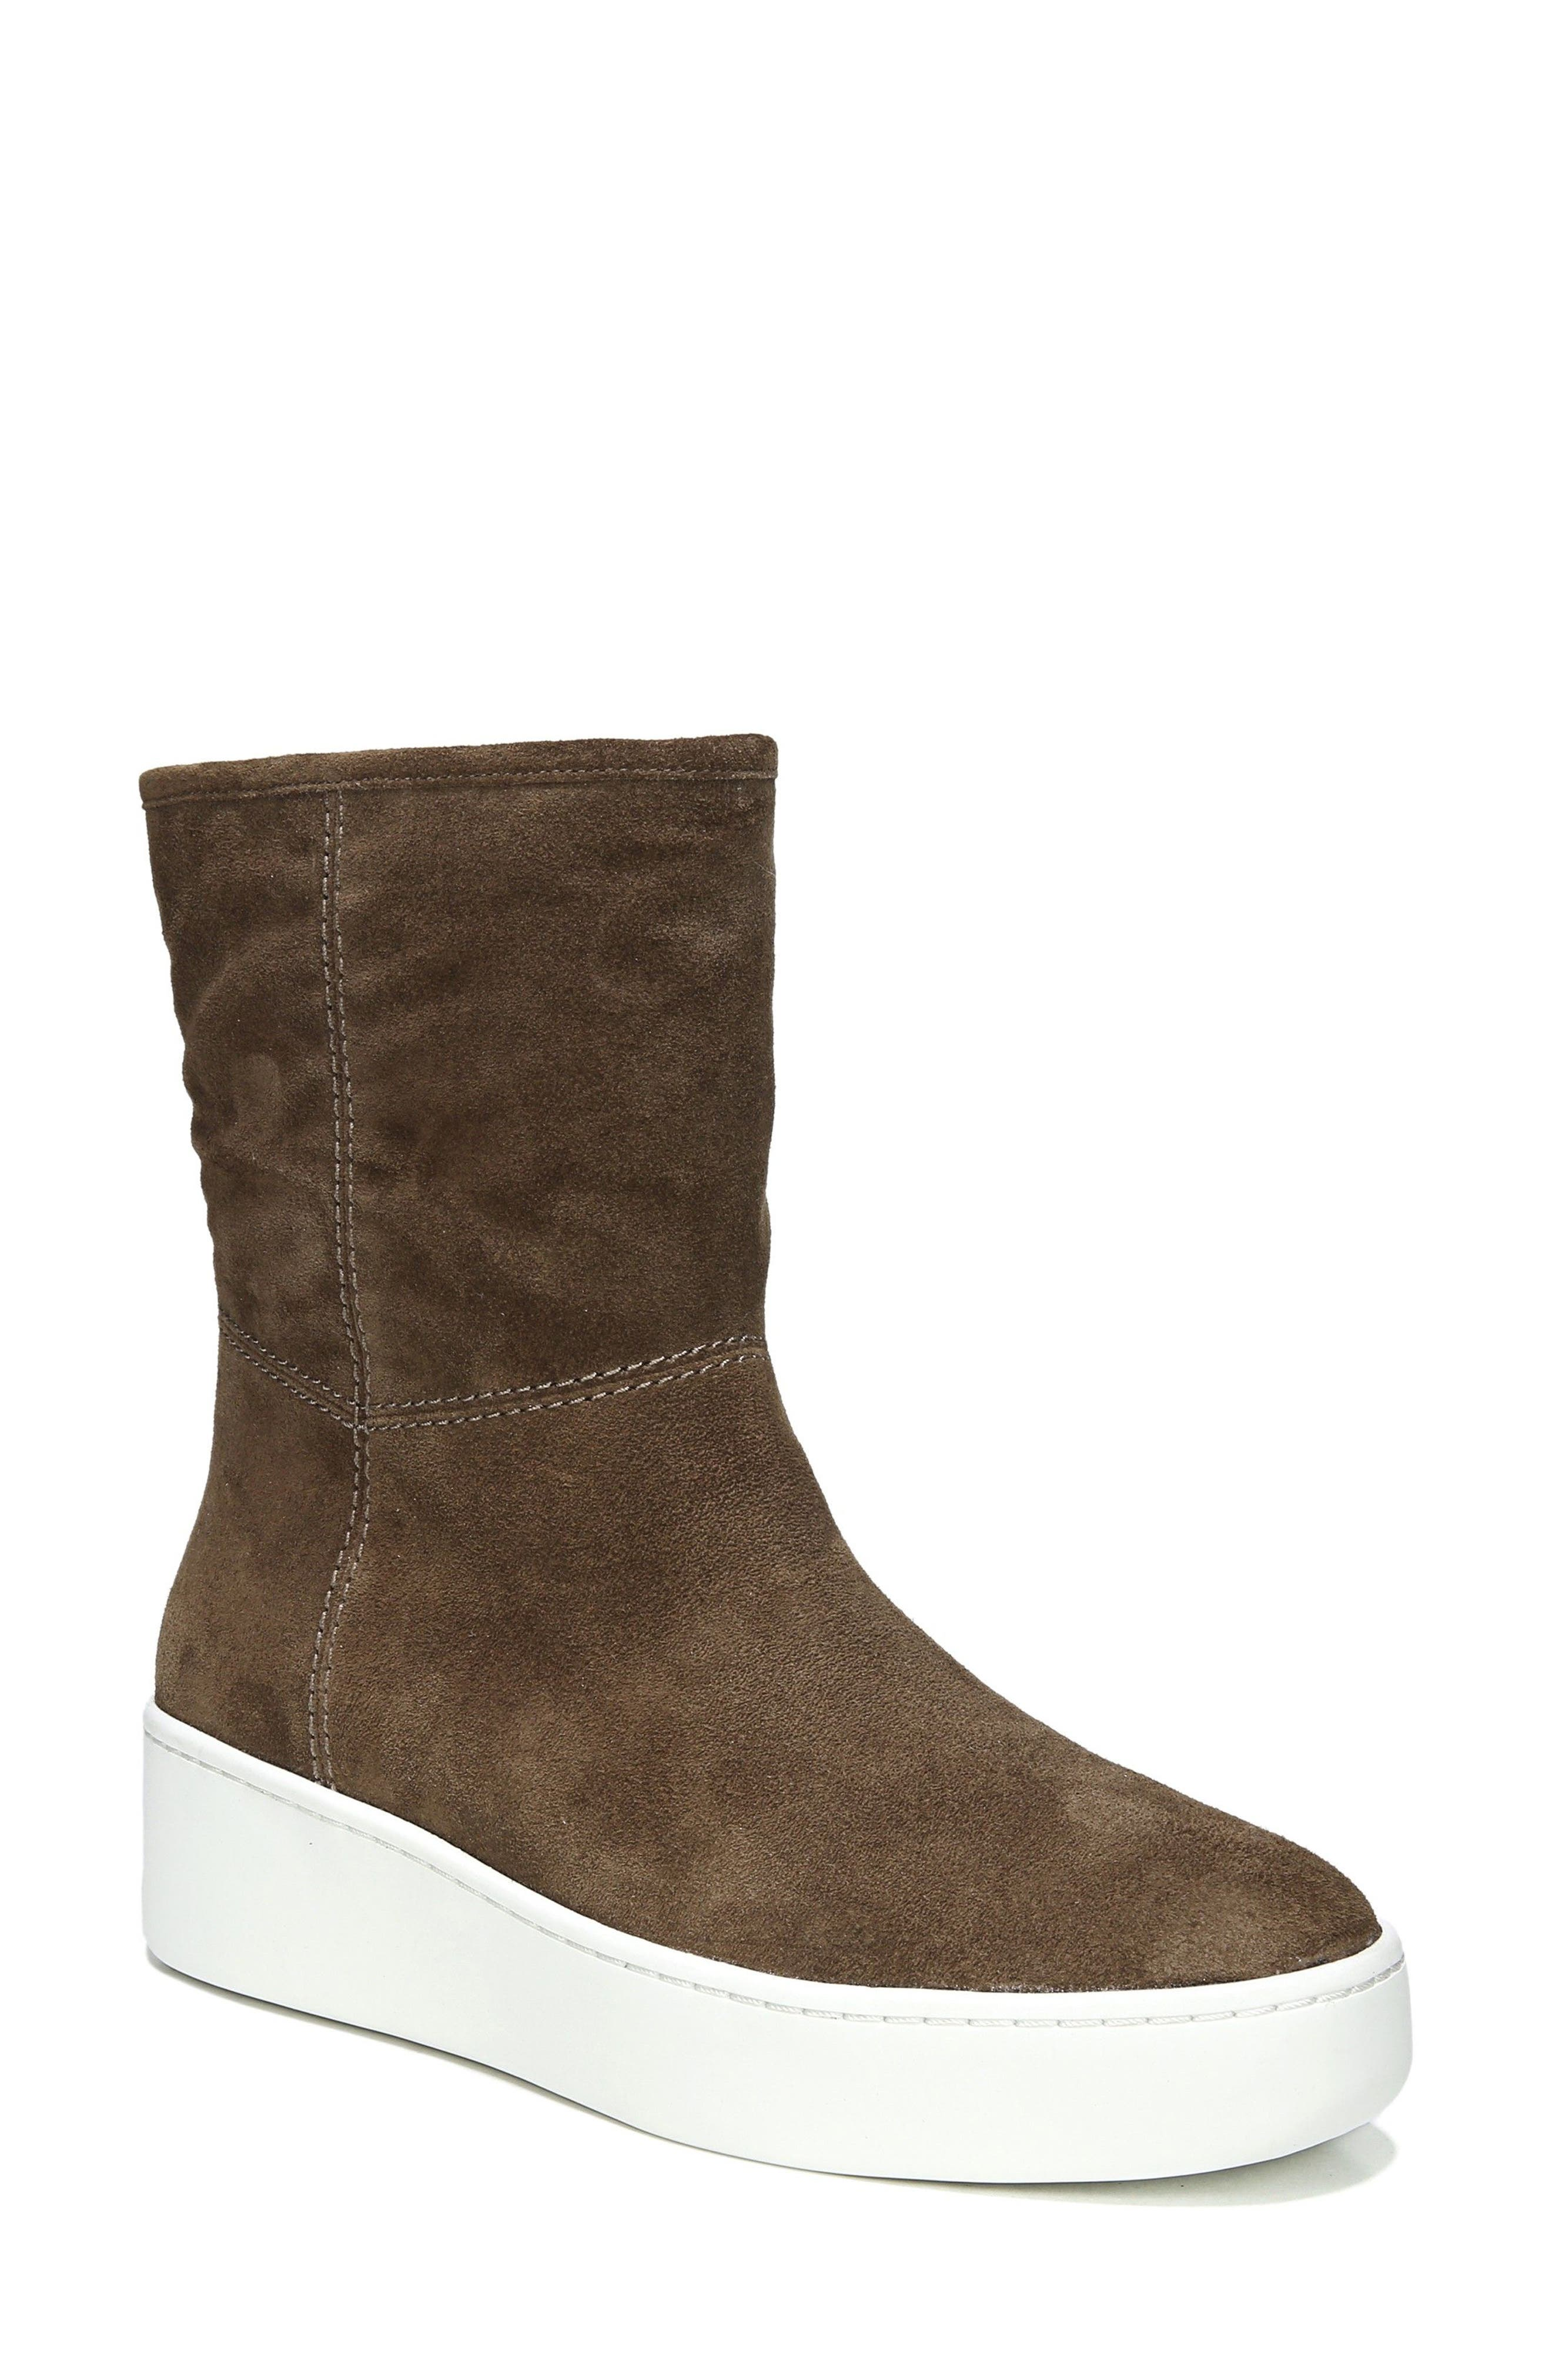 Elona Genuine Shearling Lined Sneaker Boot,                         Main,                         color, Bark Suede